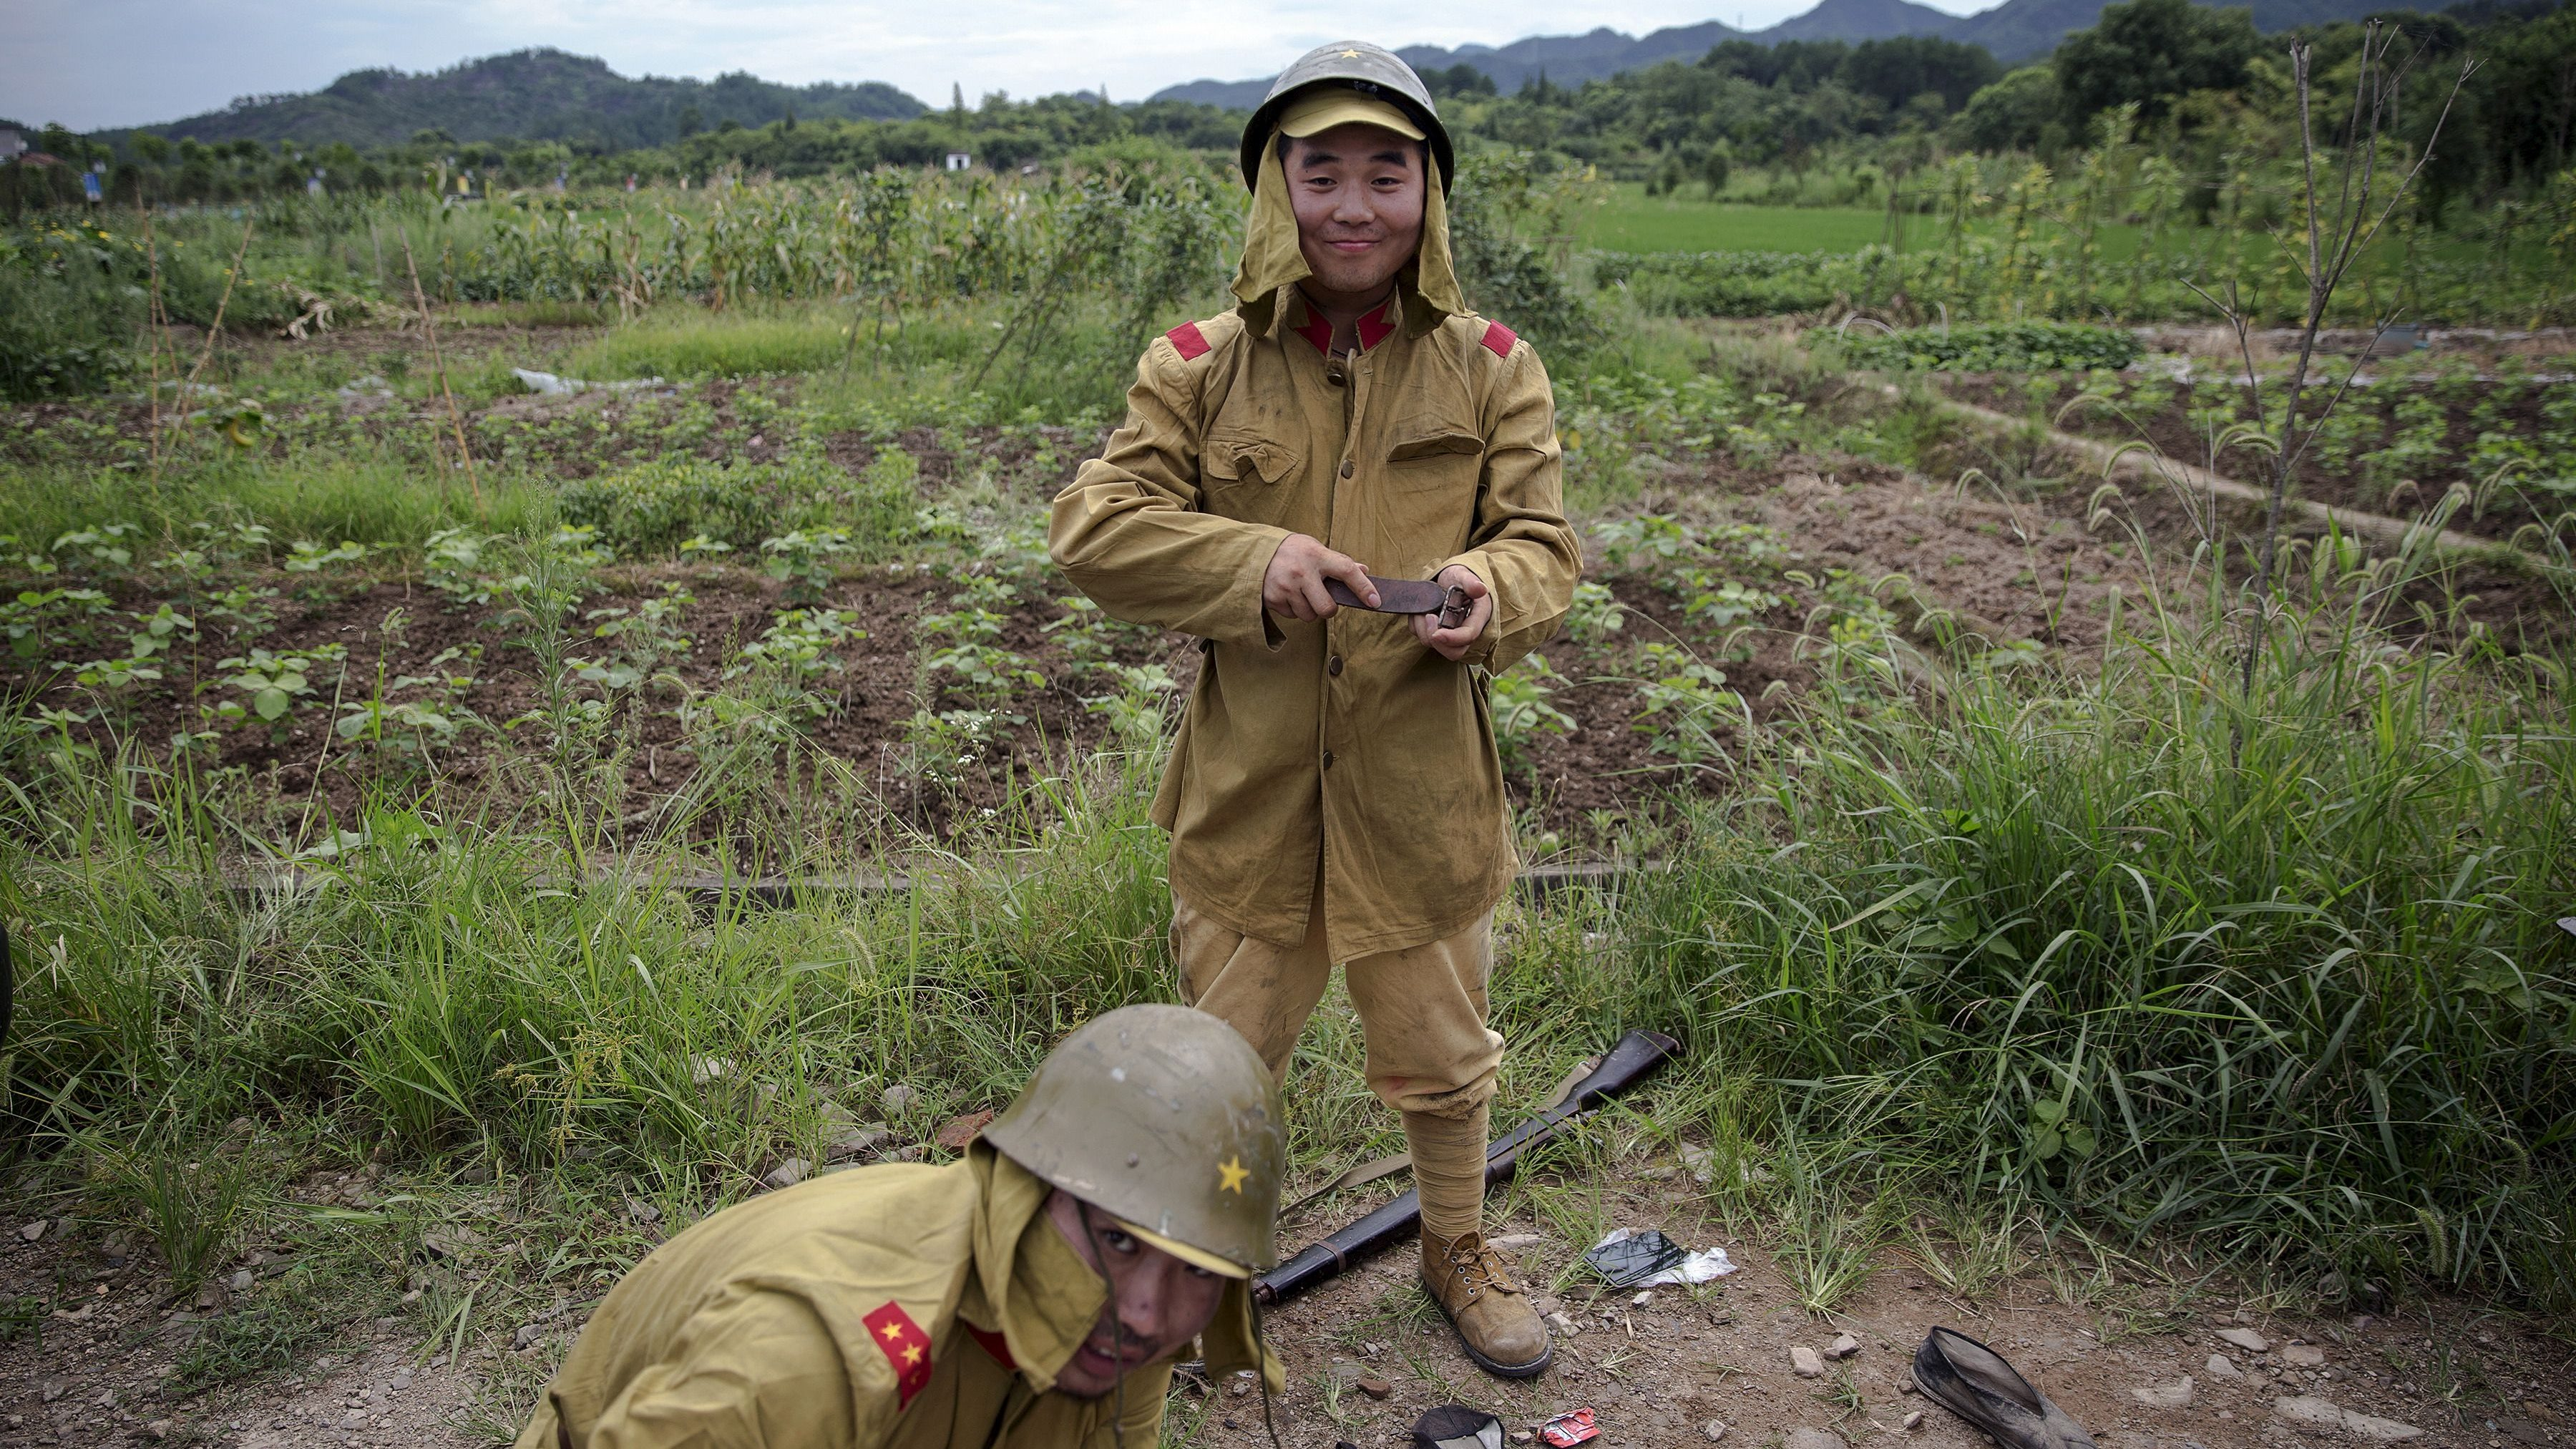 "Actors get dressed in historical Japanese army uniform costumes, minutes after playing small roles as Chinese soldiers on the set of ""The Last Prince"" television series on location near Hengdian World Studios near Hengdian July 24, 2015. Extras and actors with smaller roles often take care of their own costumes and play more than one character in this production about the war against Japan. Director Li Xiaoqiang said the series is about a Qing Dynasty prince, who joined the Chinese nationalist army after suffering family misfortune. ""After he learnt more about the Communist Party, the prince began to understand what real revolution and the anti-Japanese war meant, and turned to the Communist Party to fight Japan"", the director added. According to local media, more than 10 new movies, 12 TV dramas, 20 documentaries and 183 war-themed stage performances will be released in China to coincide with the 70th anniversary of the end of World War Two."